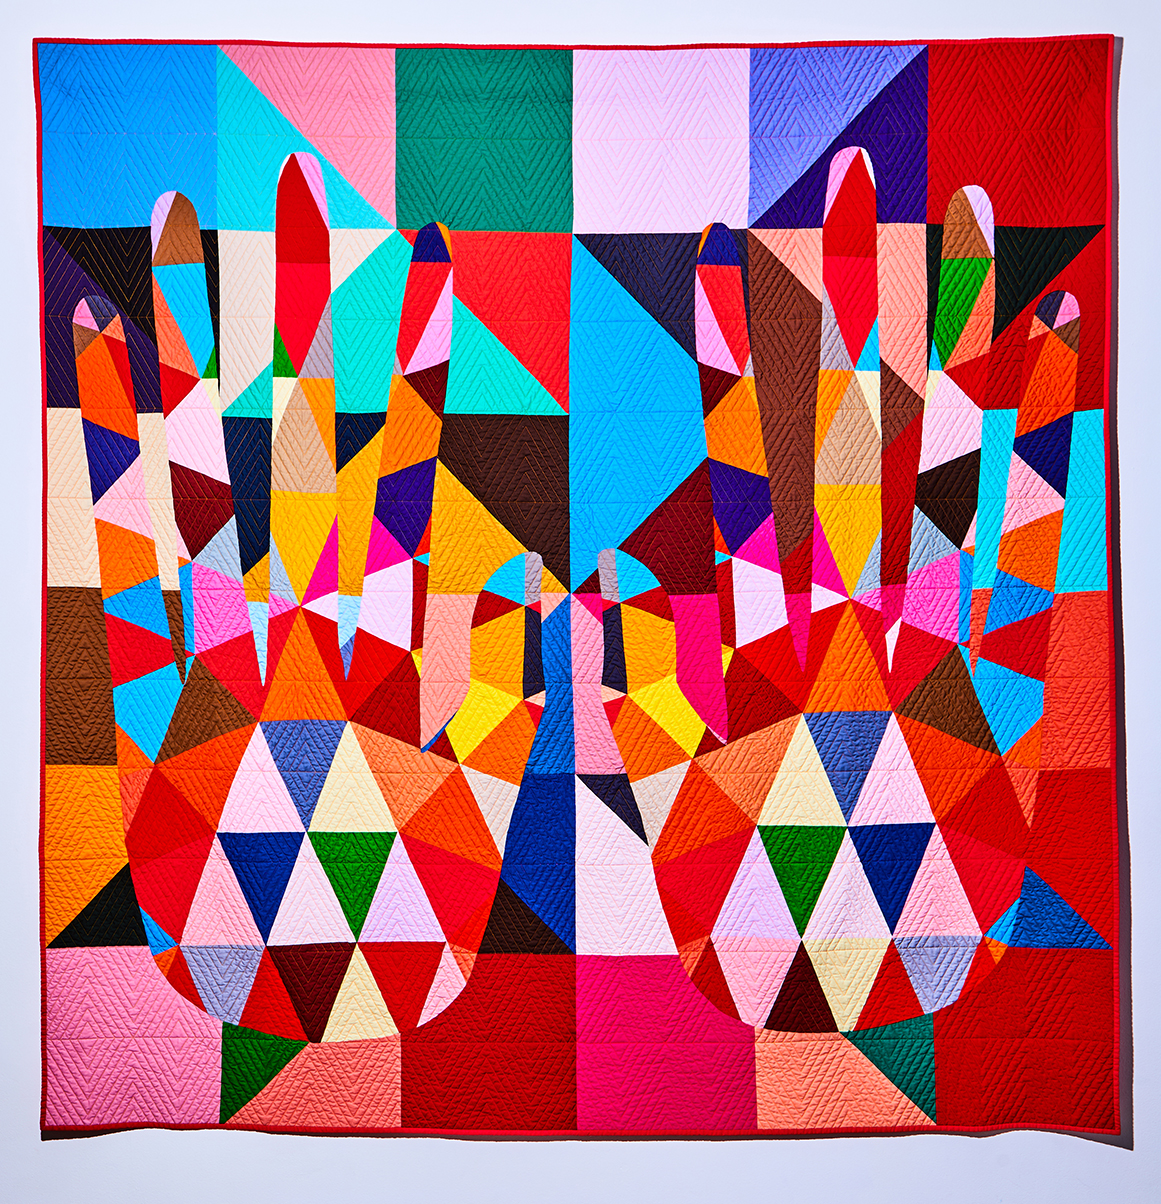 C. Finley + Aaron Sciandra Two Hot Hands Wrapped Around Your Body 86x86 in quilt, cotton, wool 2018